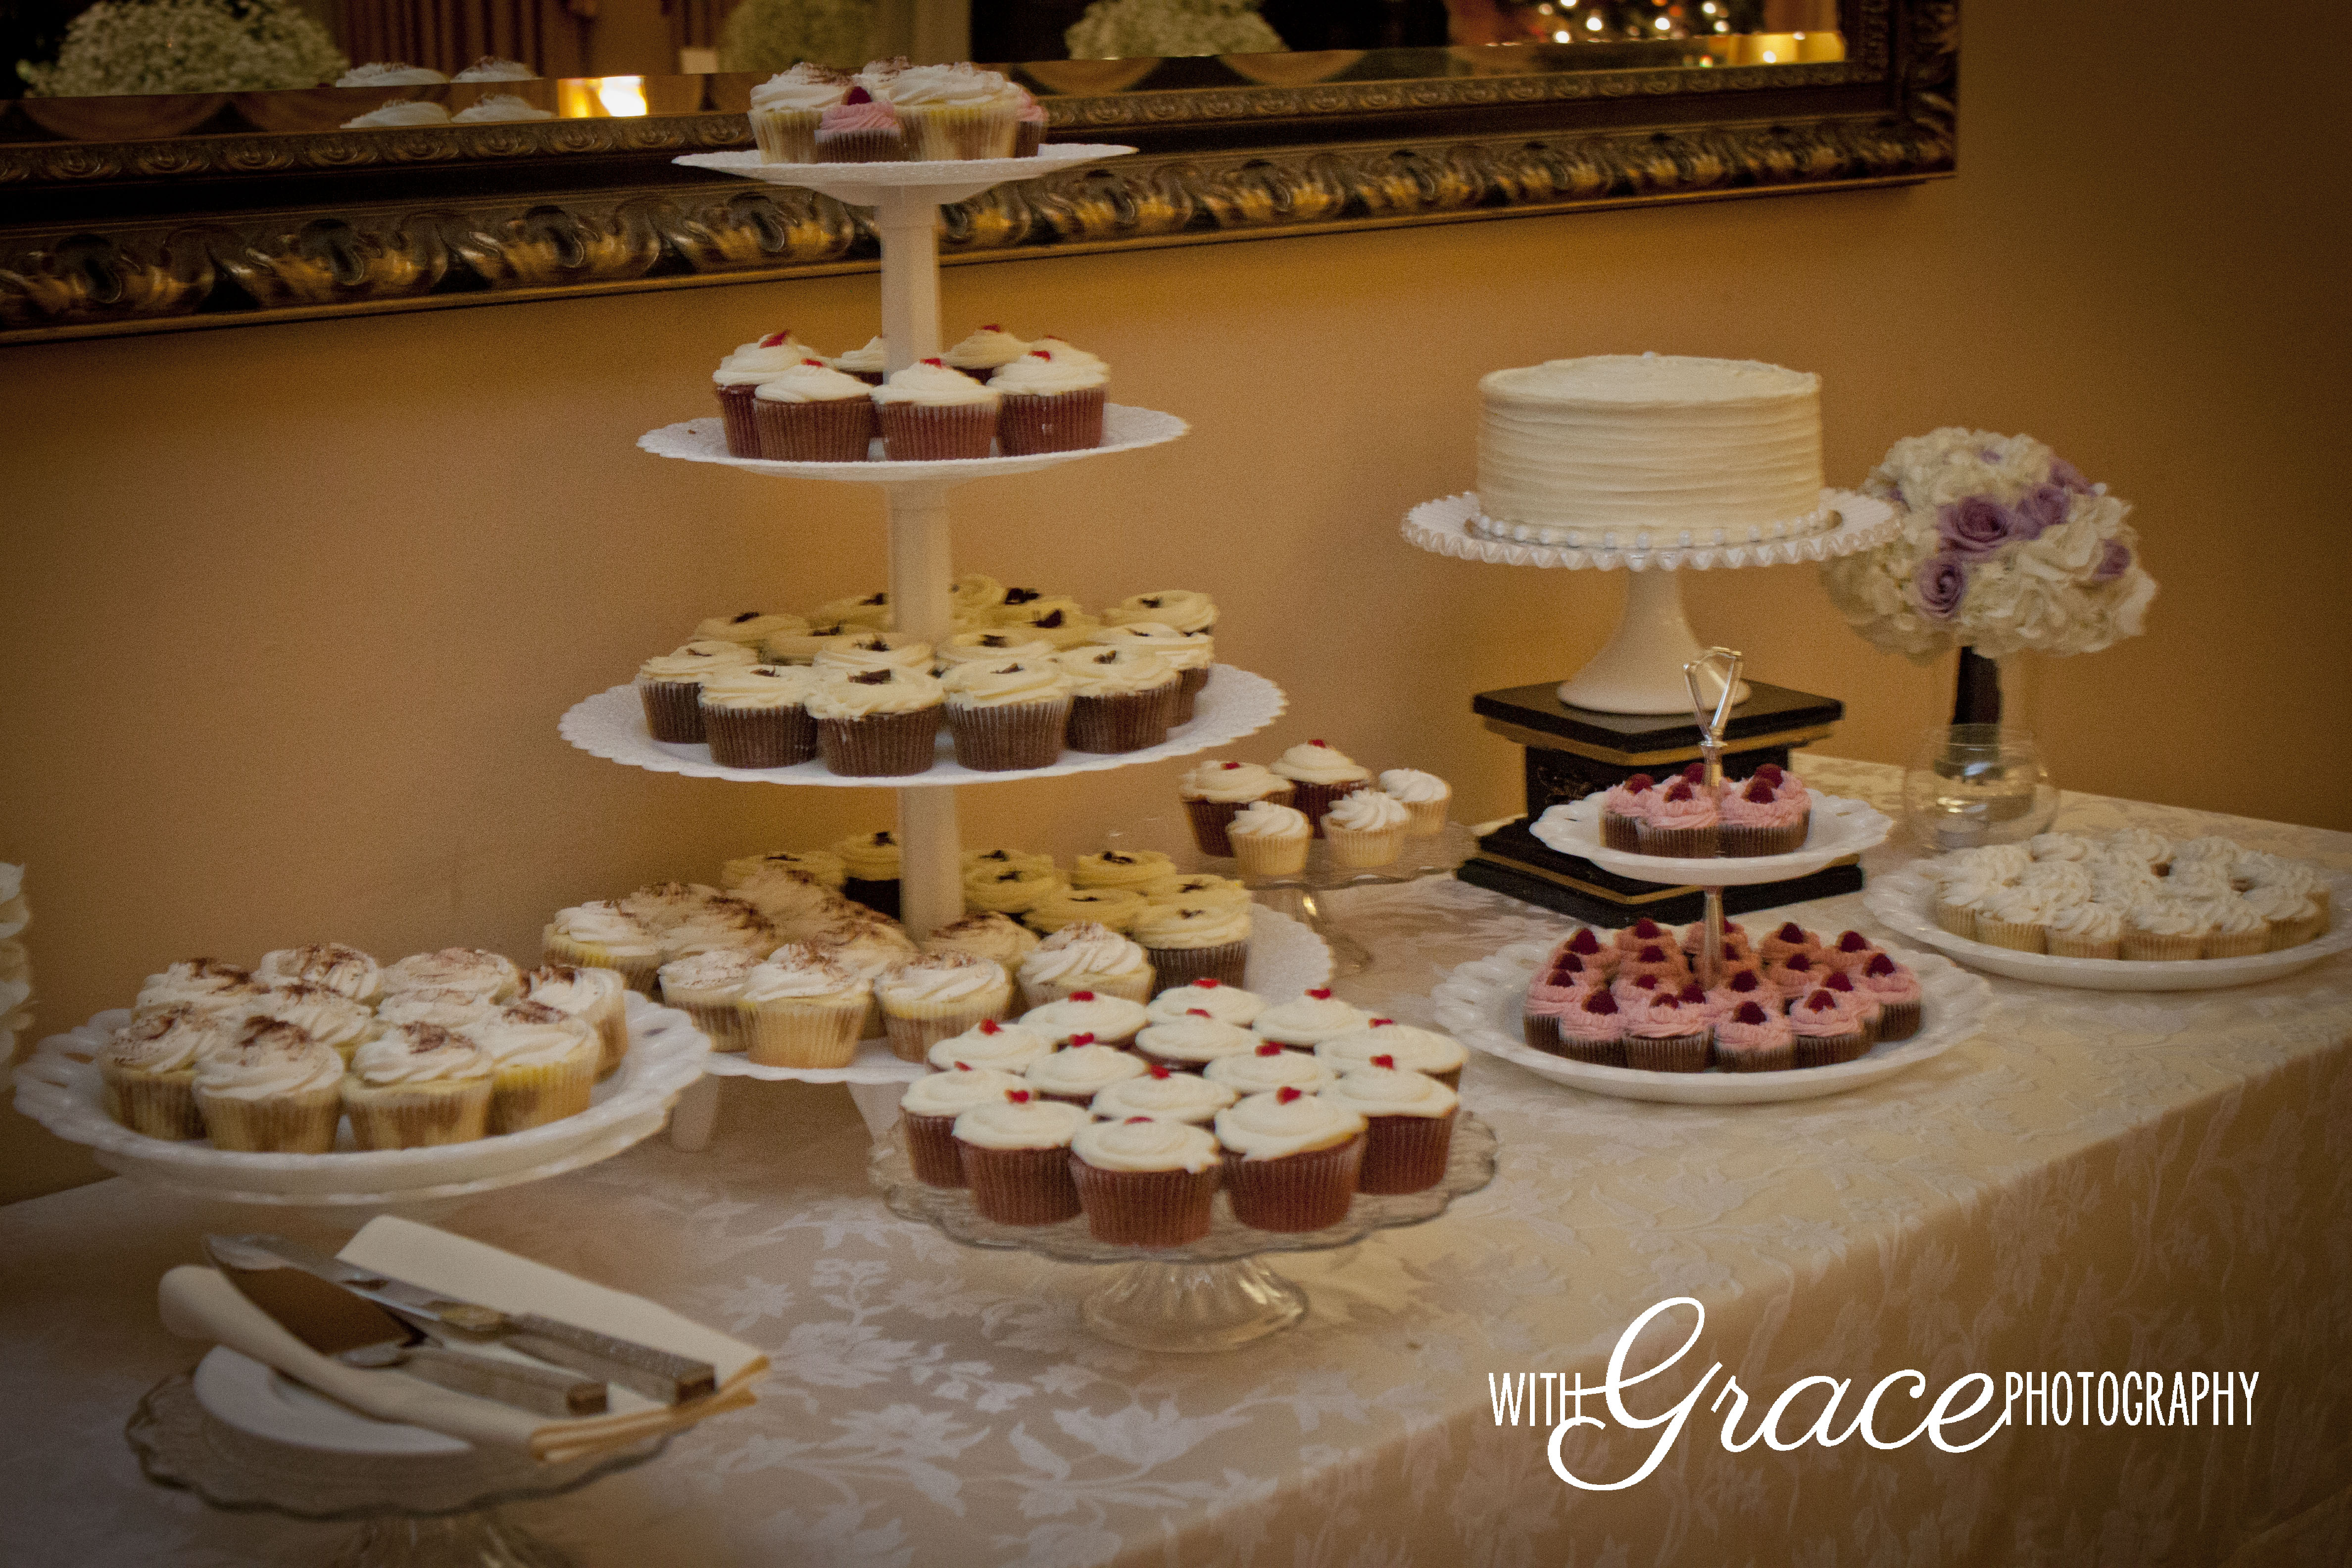 Cake & Cupcakes Table